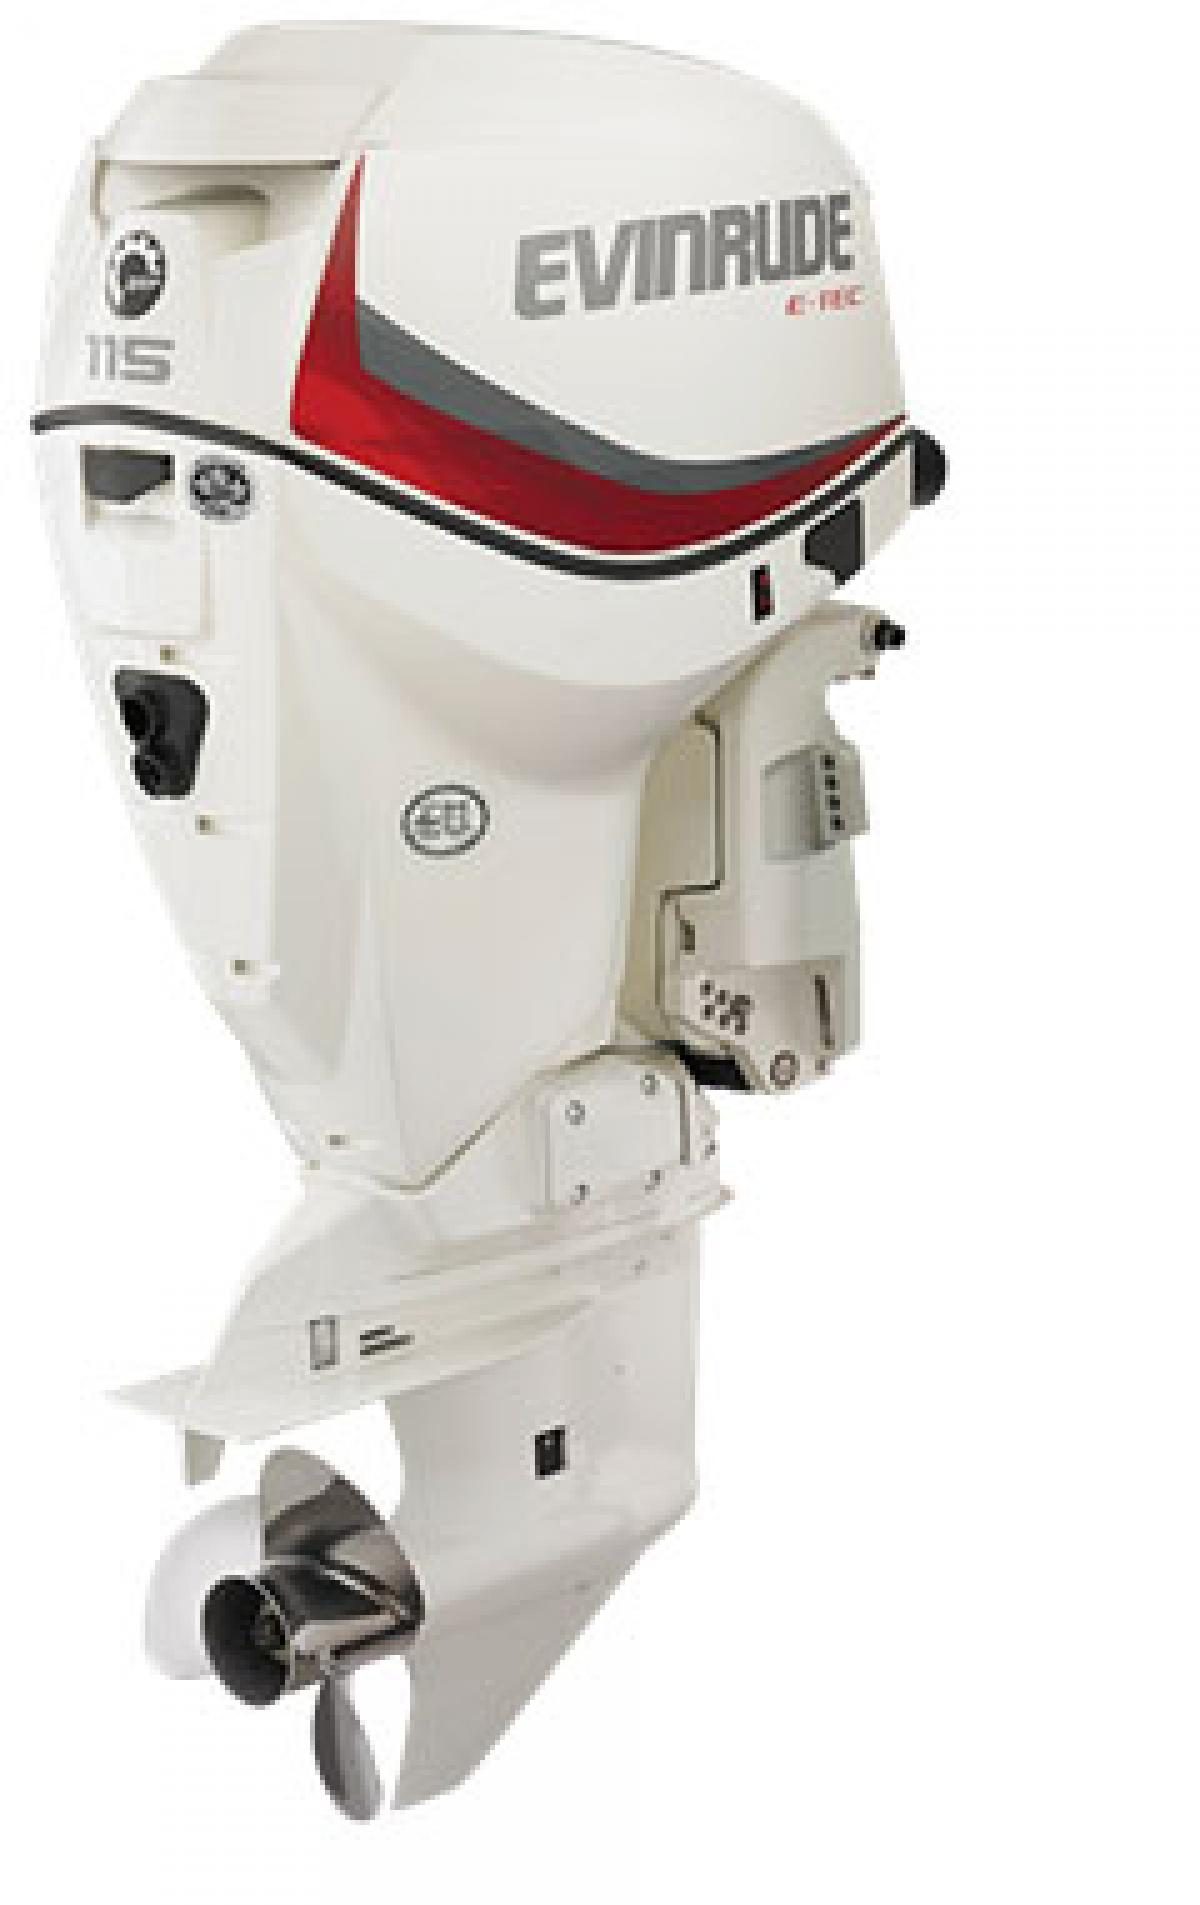 Evinrude Etec 115DSL Direct Injection Outboard Engine